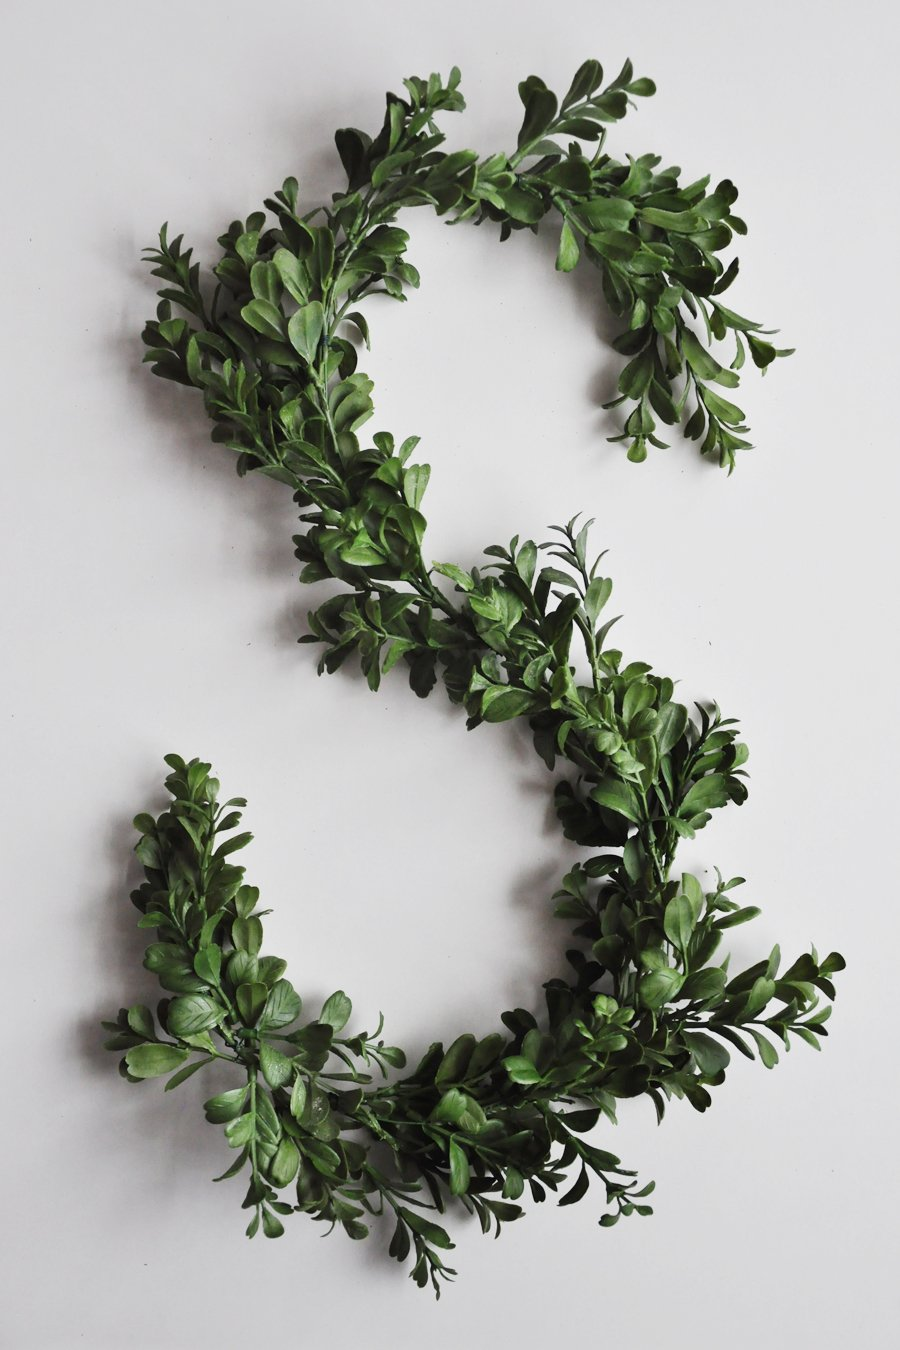 DIY: Modern, Asymmetrical Holiday Wreath on a Round Mirror